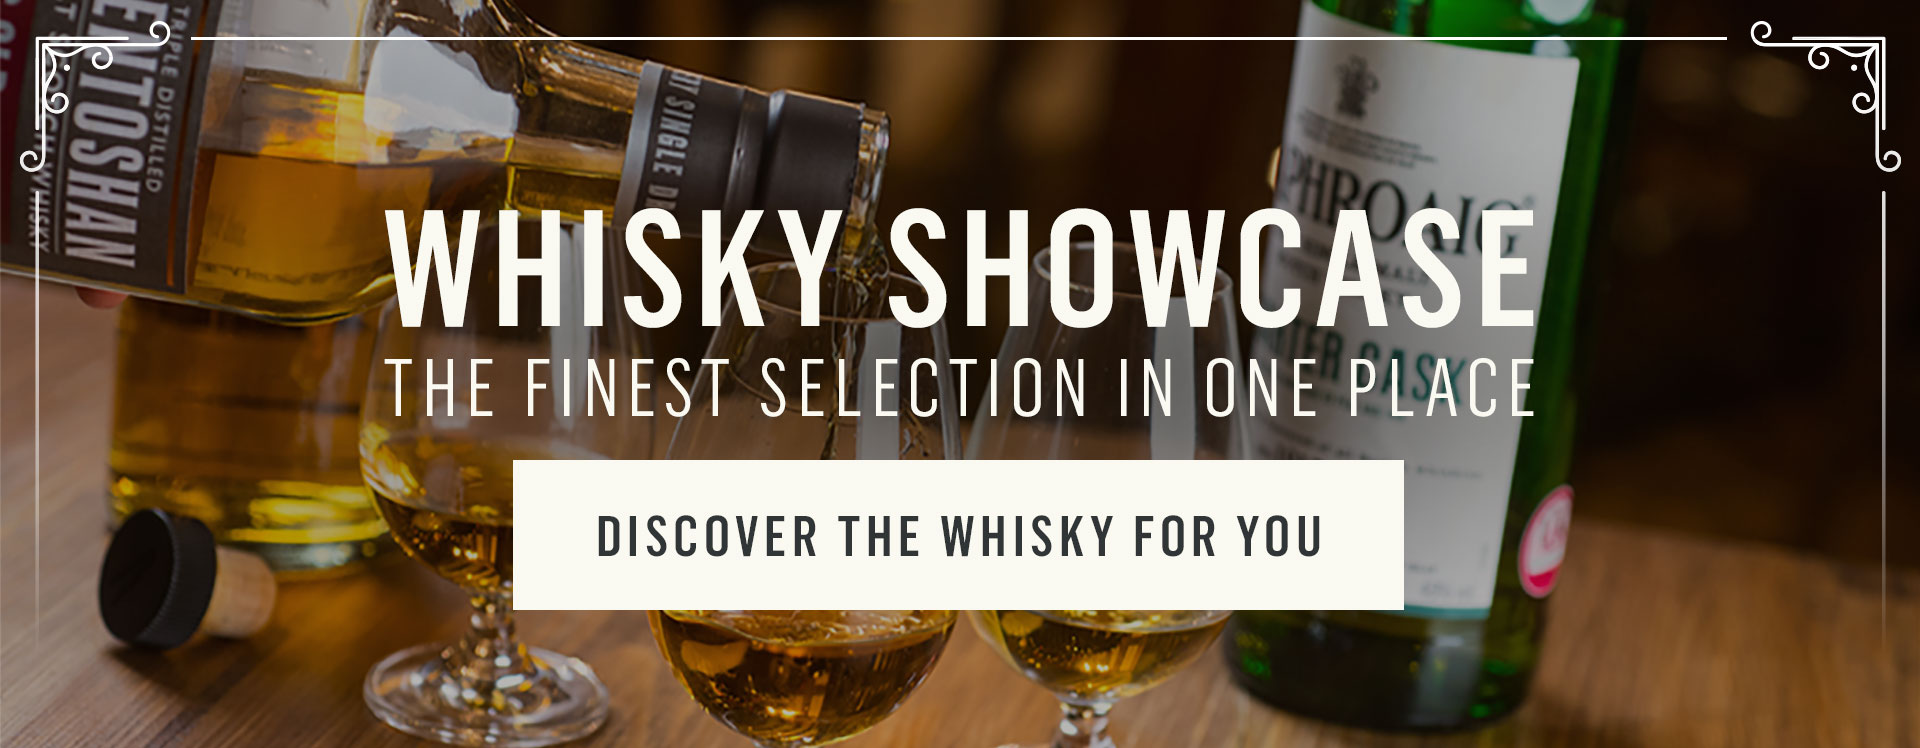 Whisky Showcase at The Carpenter's Arms in Windsor